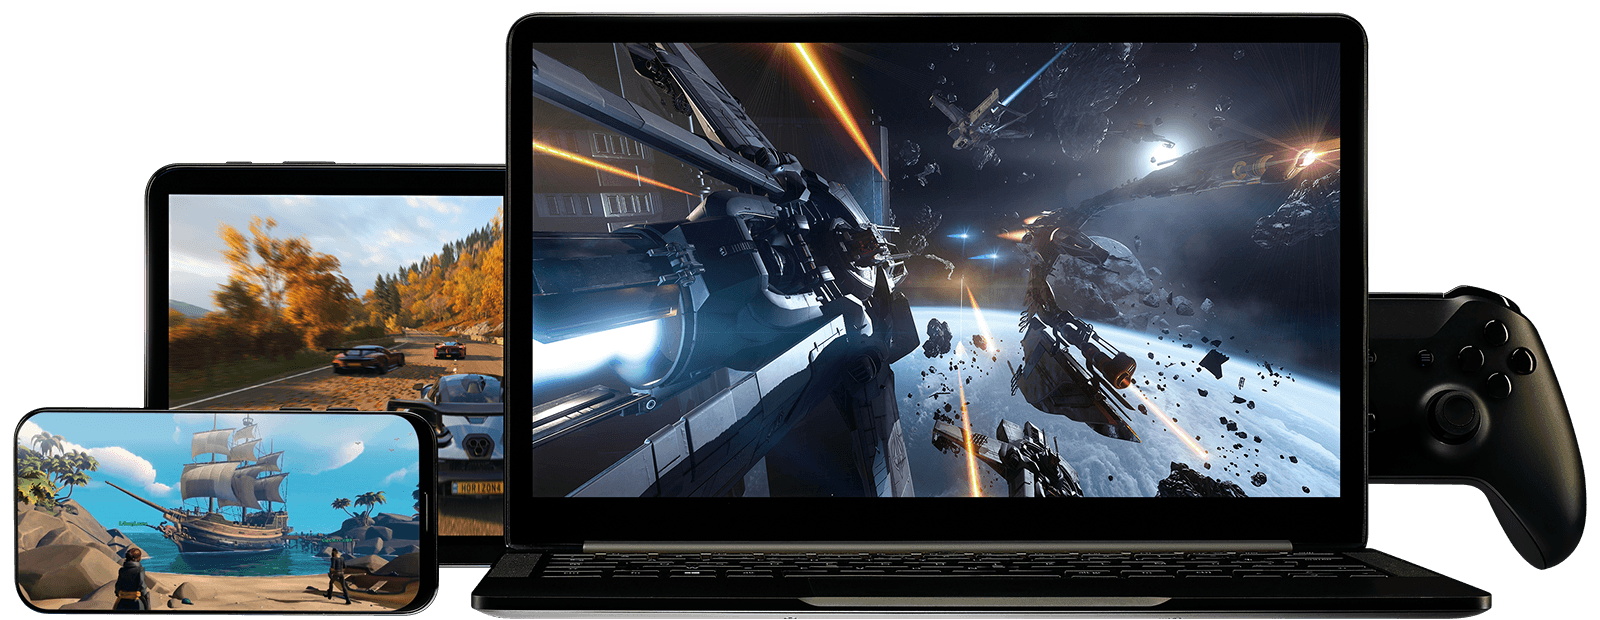 laptop 3d games free download for windows 7